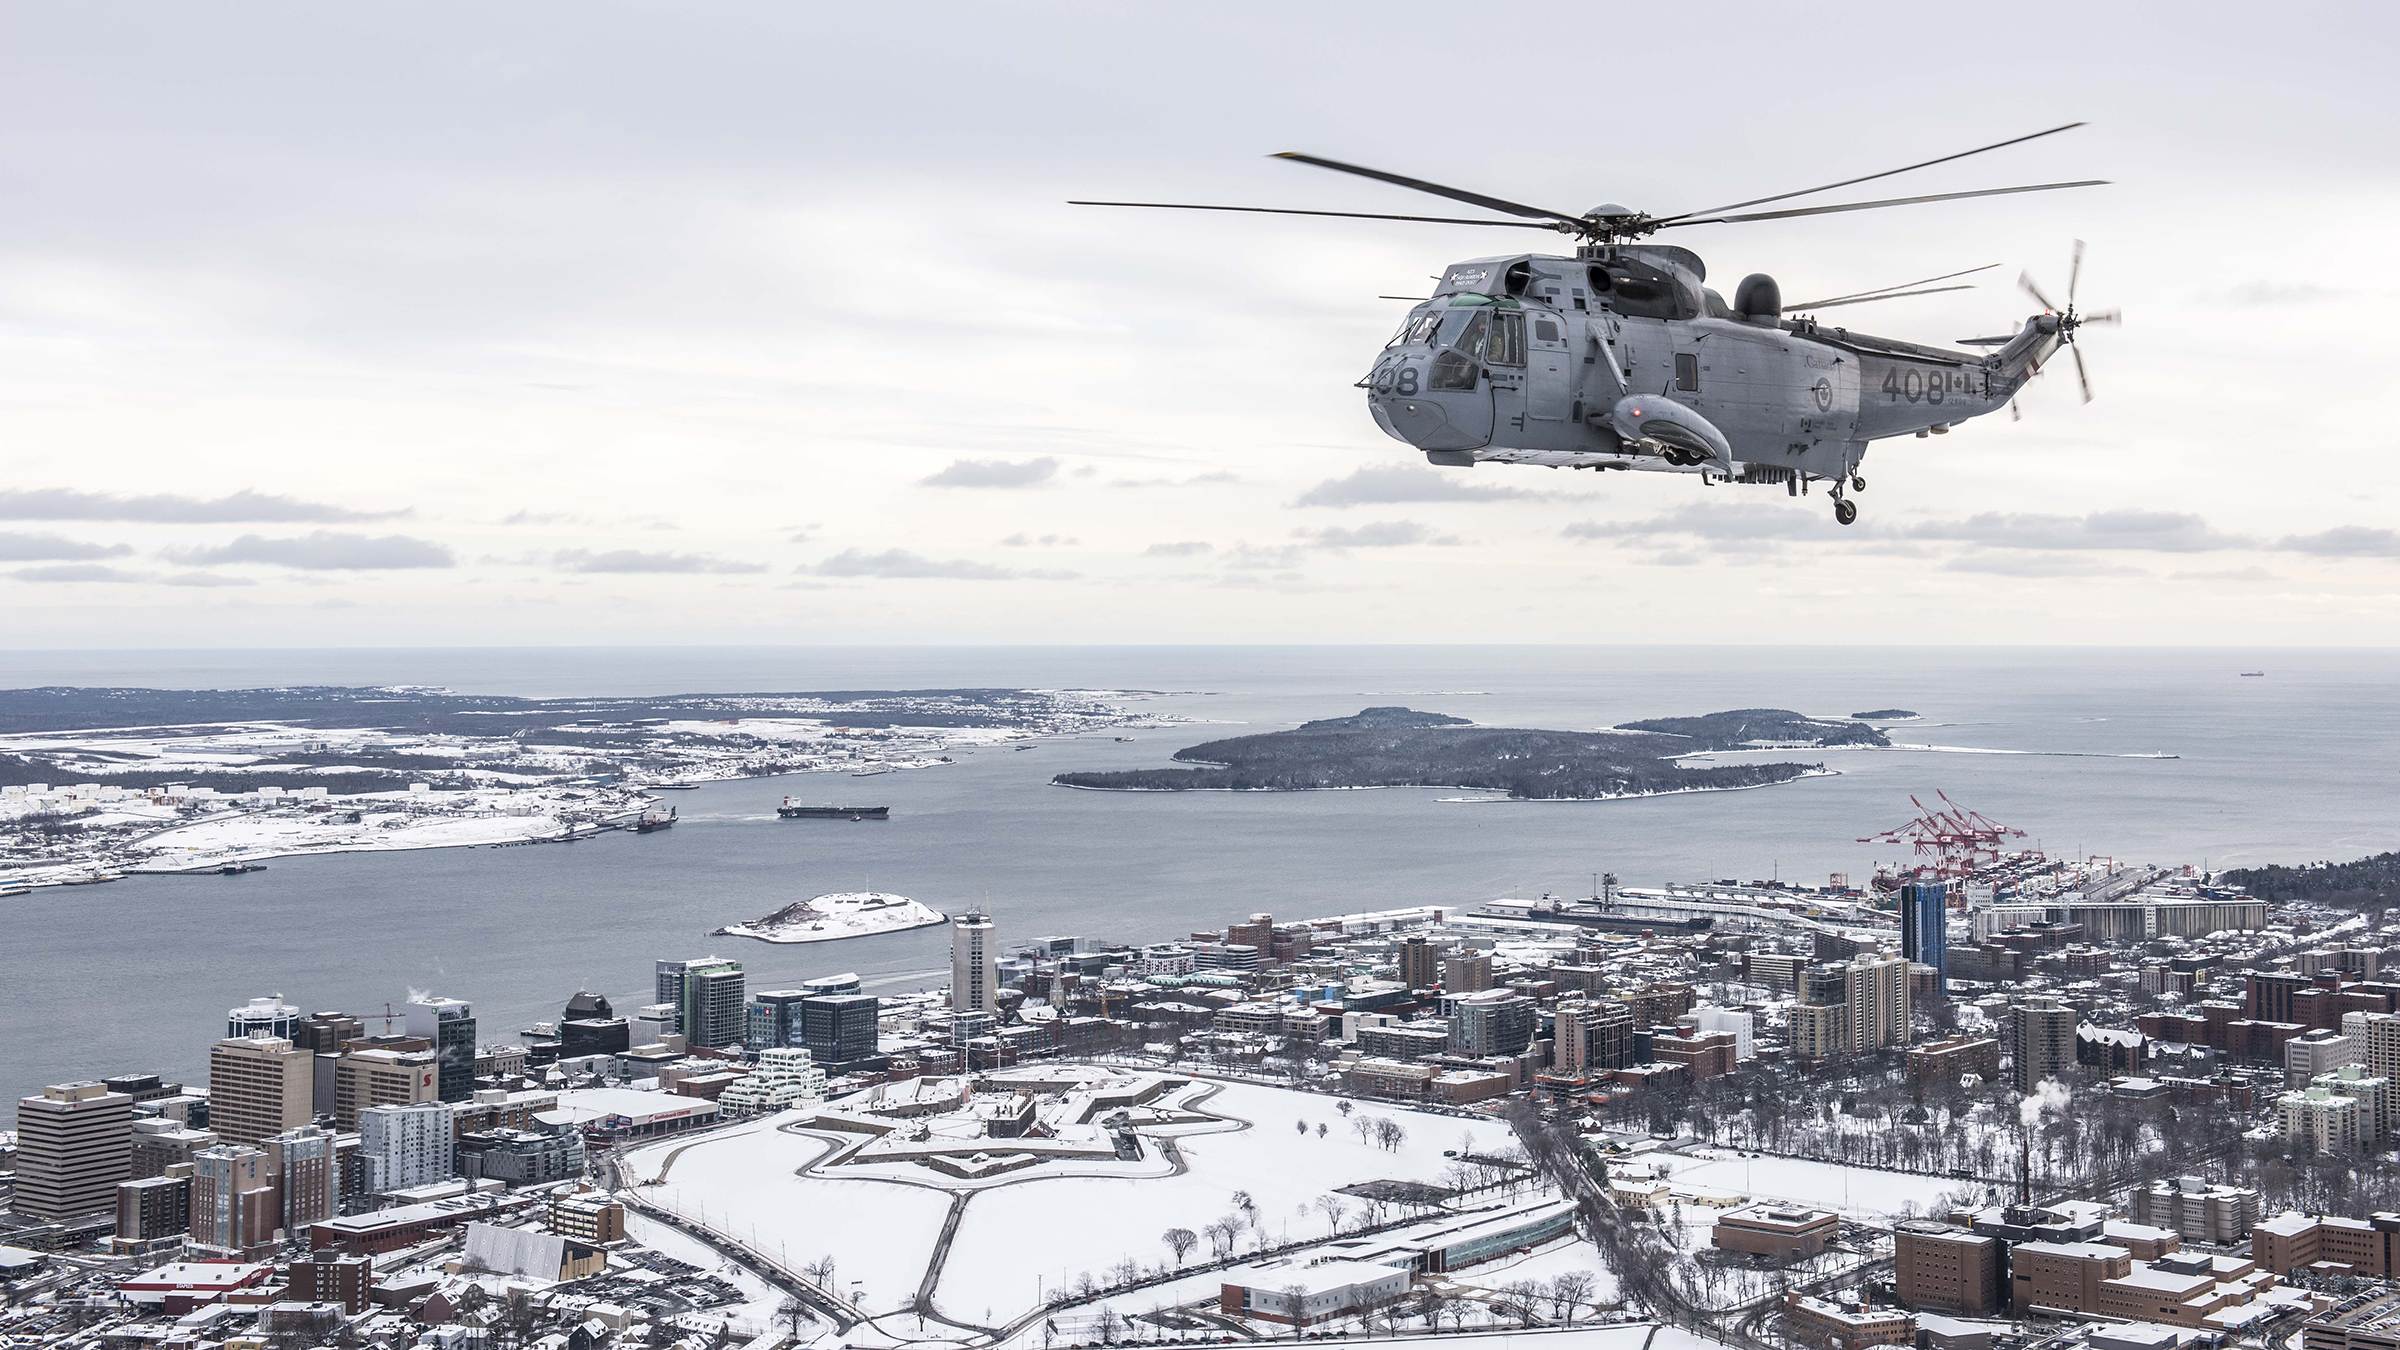 A CH-124 Sea King helicopter from 423 Maritime Helicopter Squadron, based at Shearwater, Nova Scotia, flies over Halifax on January 19, 2018. The squadron conducted its final Sea King flight on January 26, 2018, and will now turn its full attention to transitioning to the RCAF's new maritime helicopter, the CH-148 Cyclone. Sea King operations on the east and west coasts will be conducted by 443 Maritime Helicopter Squadron, located in British Columbia, until the helicopter retires at the end of 2018. PHOTO: Corporal Anthony Laviolette, SW04-2018-0020-015